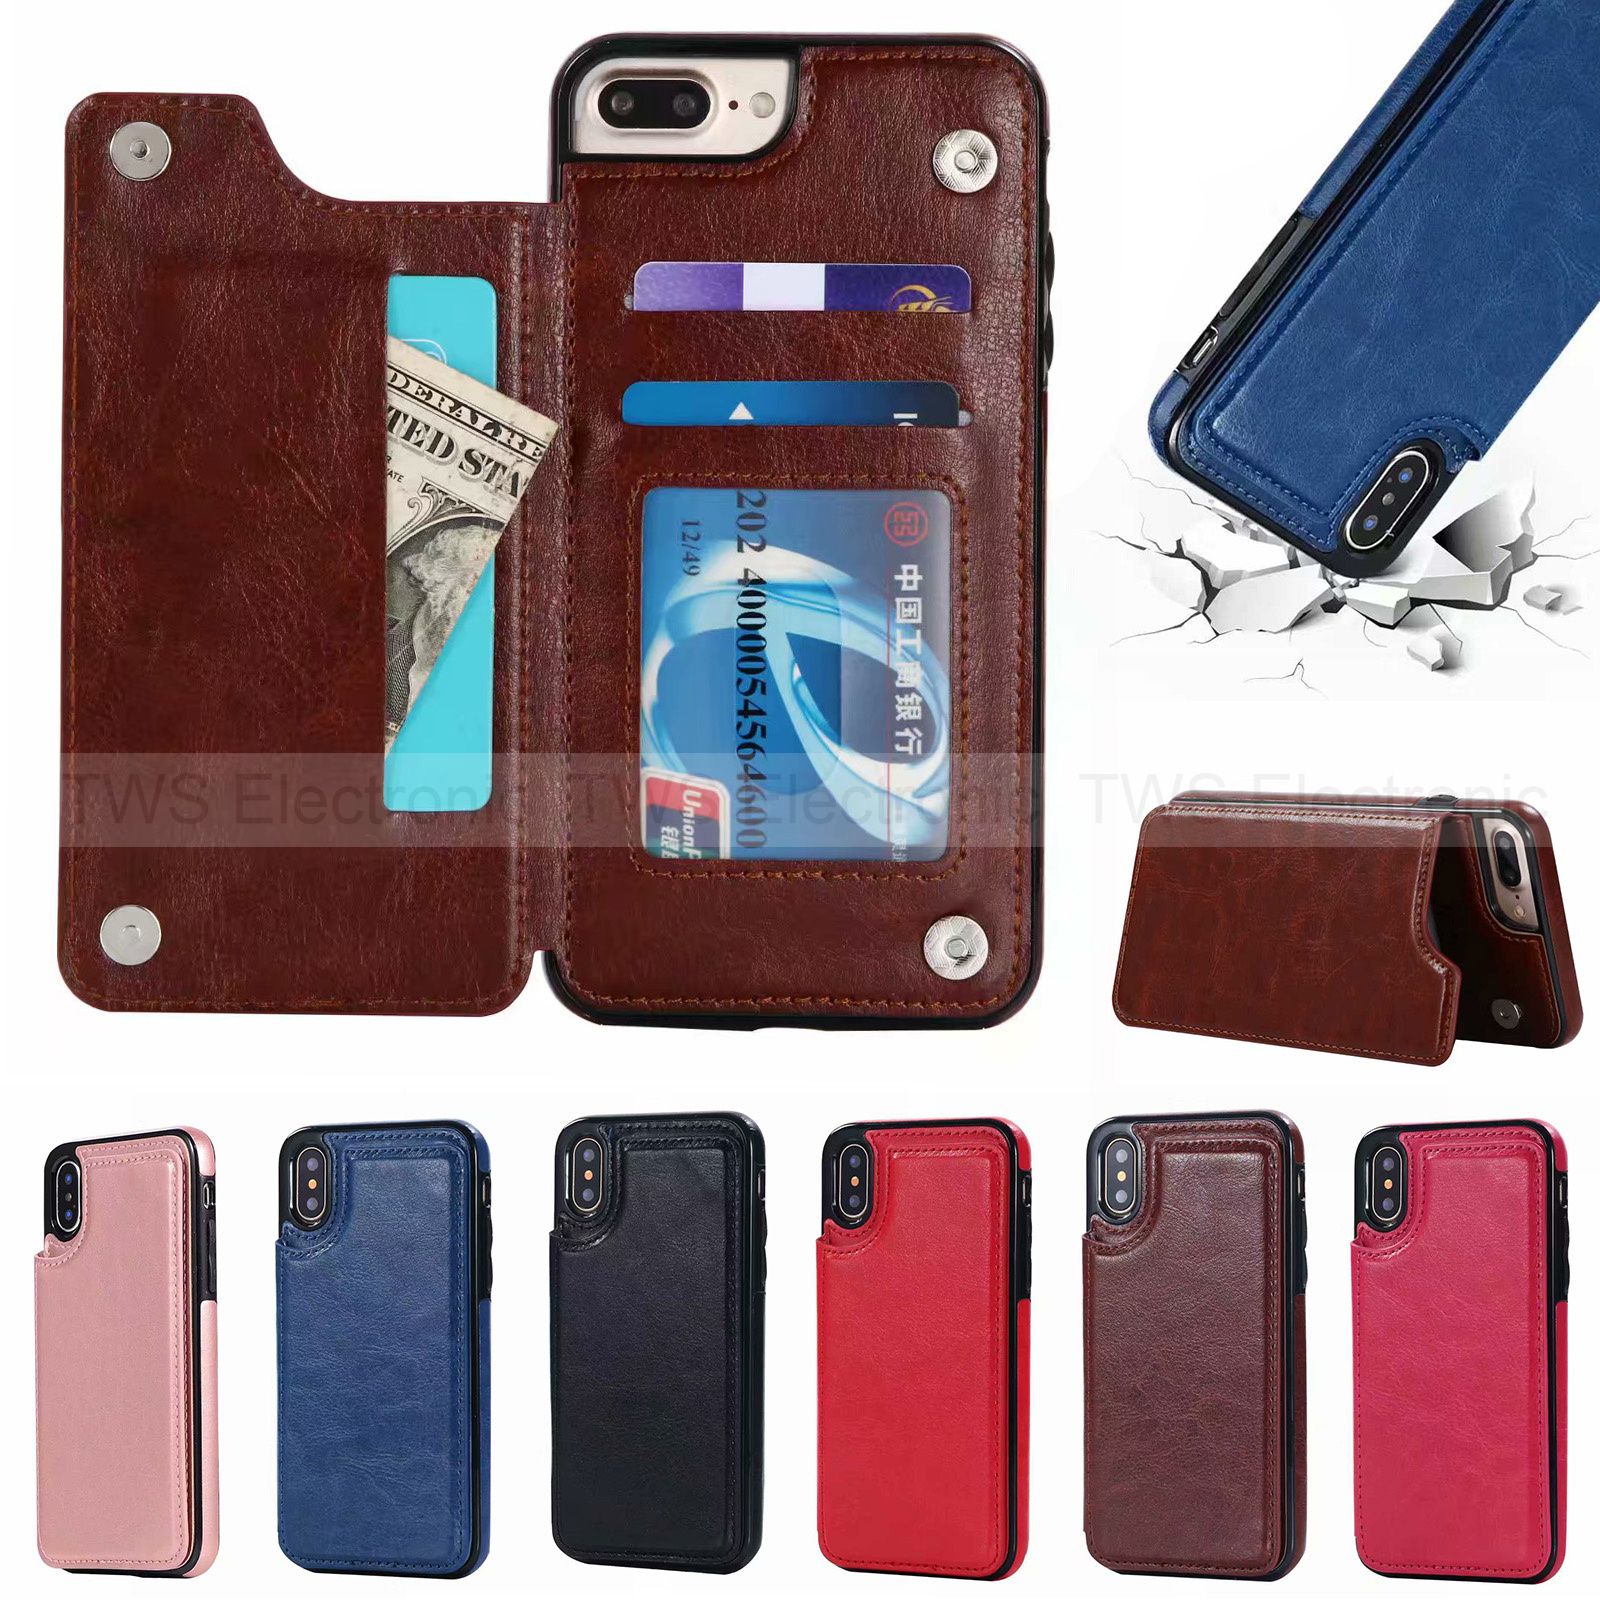 separation shoes 4d587 a9d49 Details about Magnetic Leather Wallet Case Card Slot Shockproof Flip Cover  for iPhone XS MAX 7